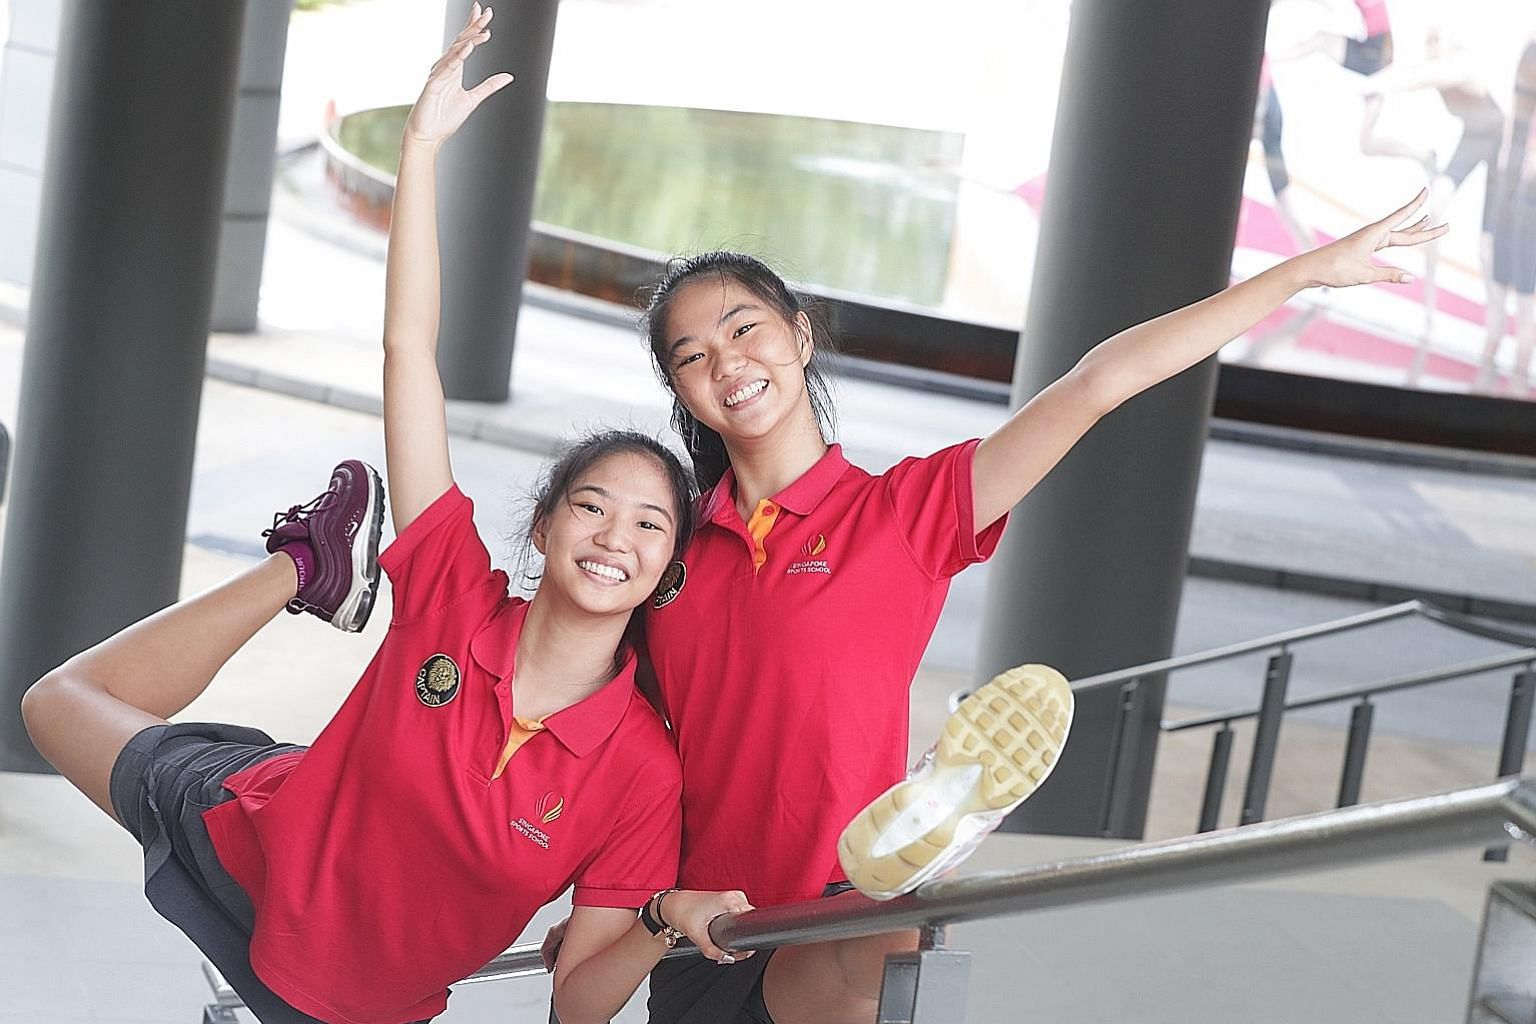 (From left) Phebe Meredith Lau Zhi Ling and Michele Petrova Lau Xin Ling, both 18. Last year, besides attending school, the two had to juggle training with their Aesthetic Group Gymnastics team, as well as coaching the new generation of rhythmic gymnasts.